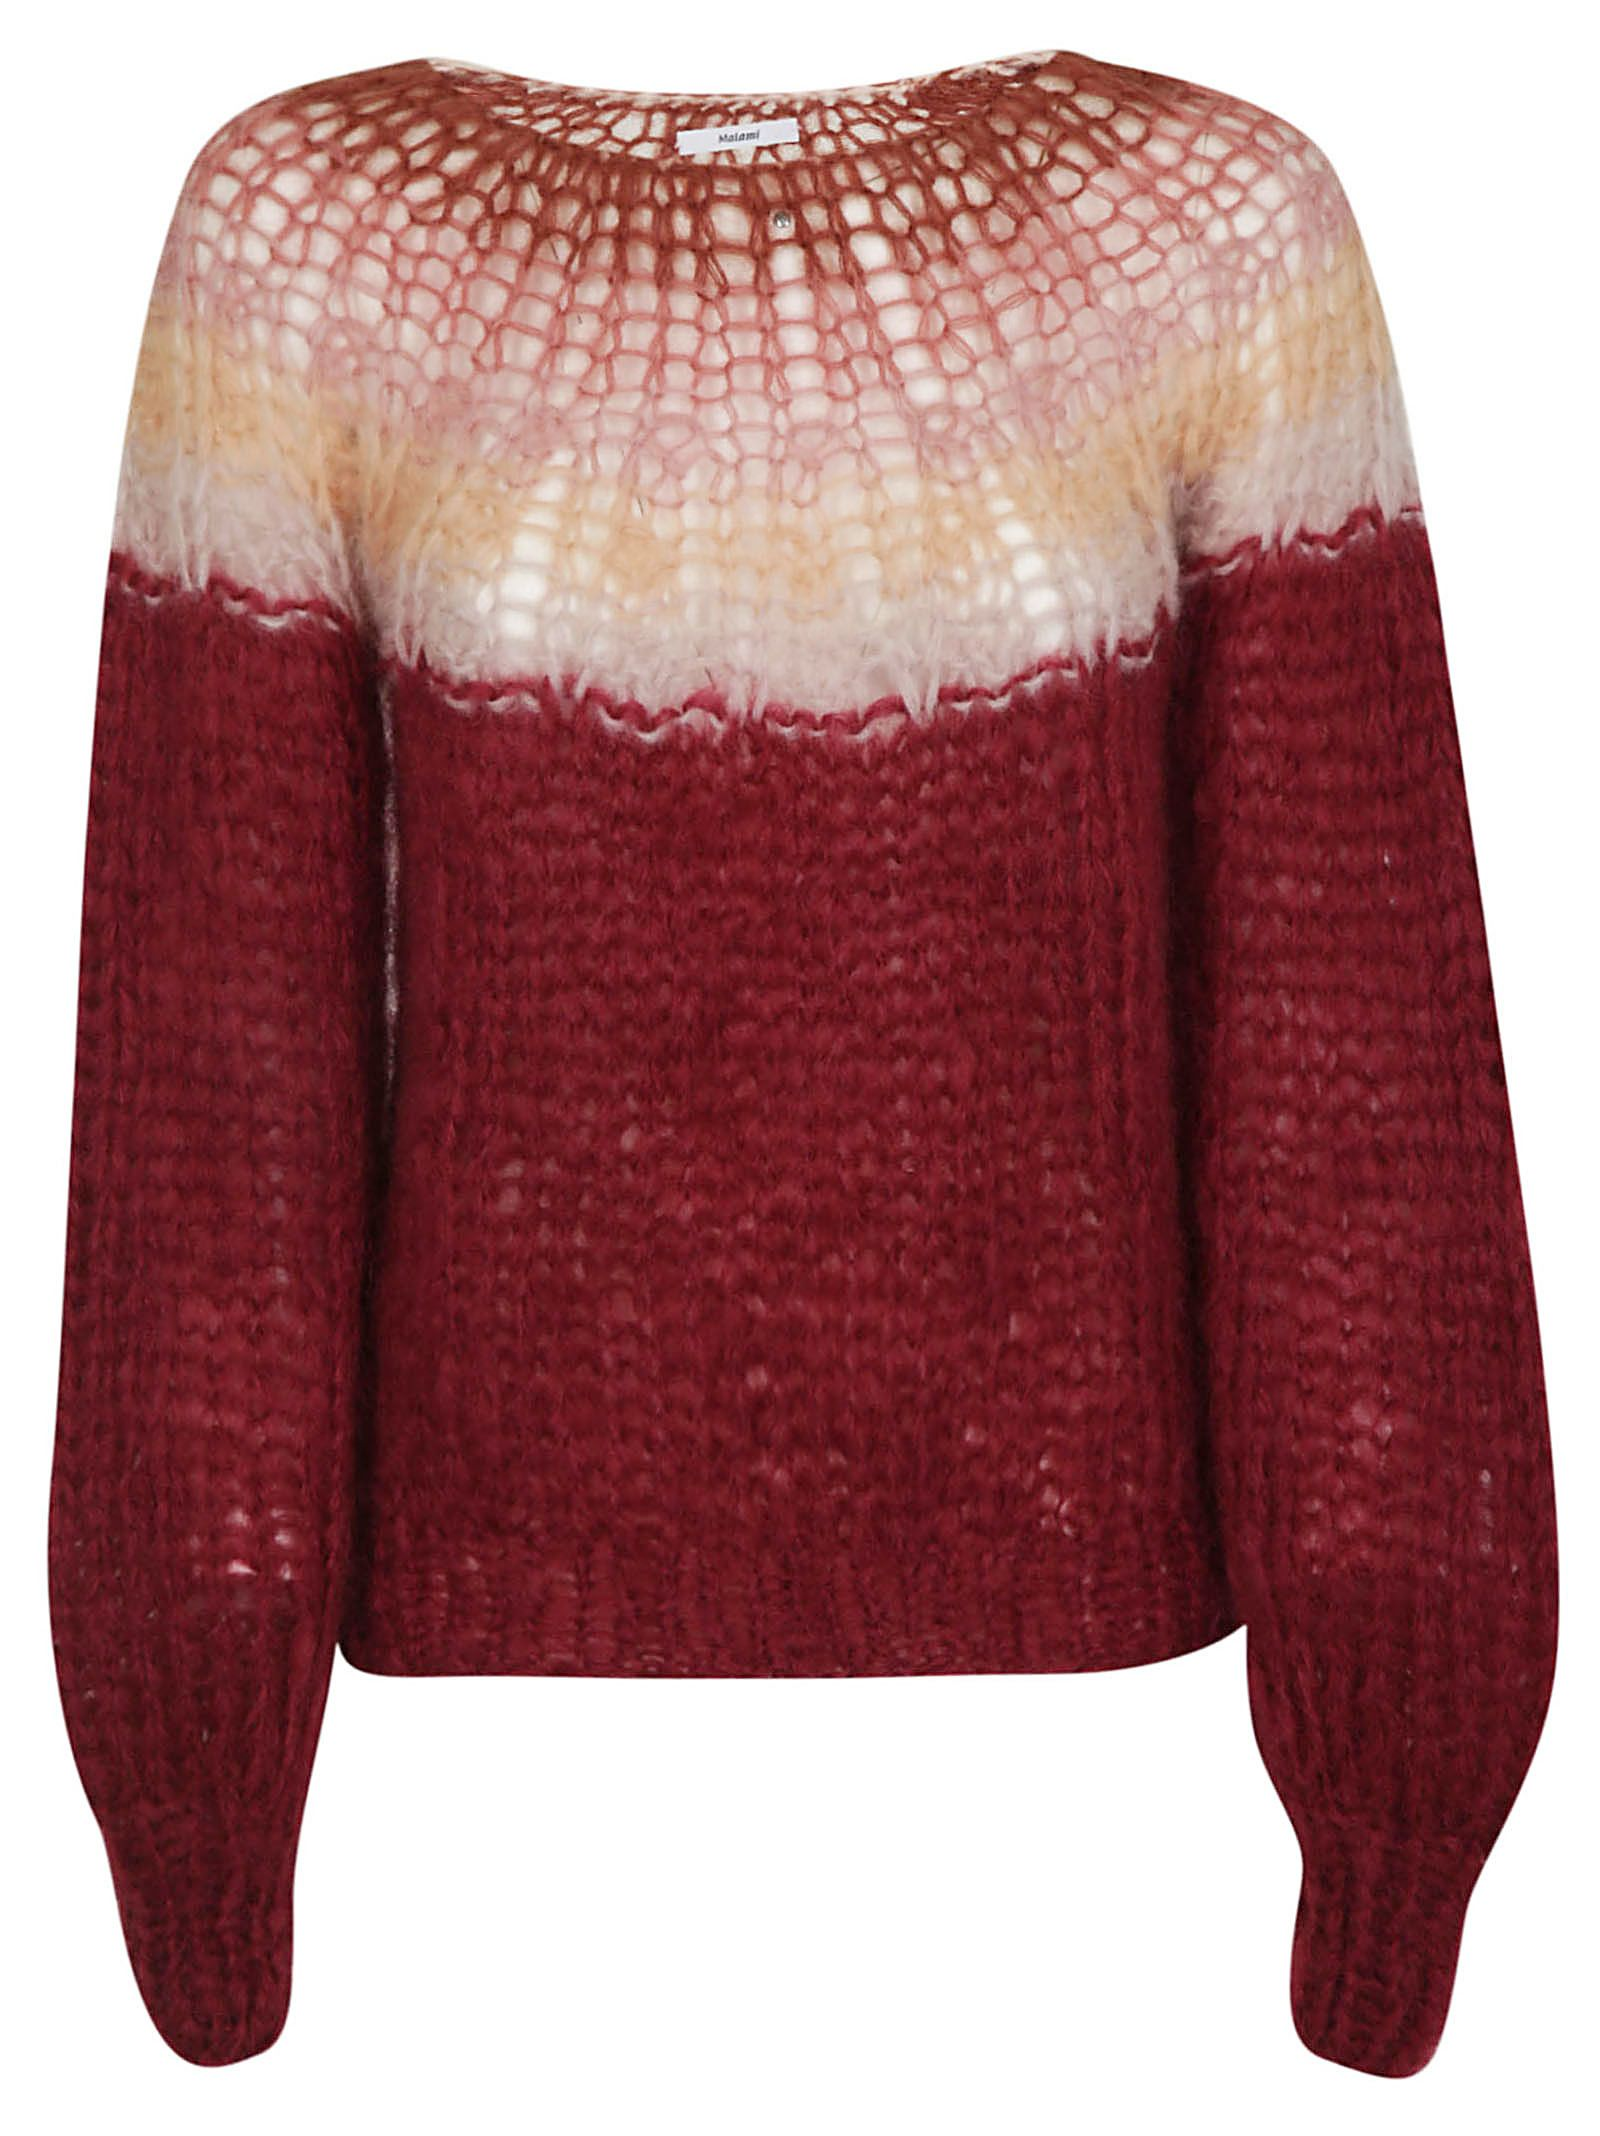 MAIAMI Maiami Knitted Sweater in Vino